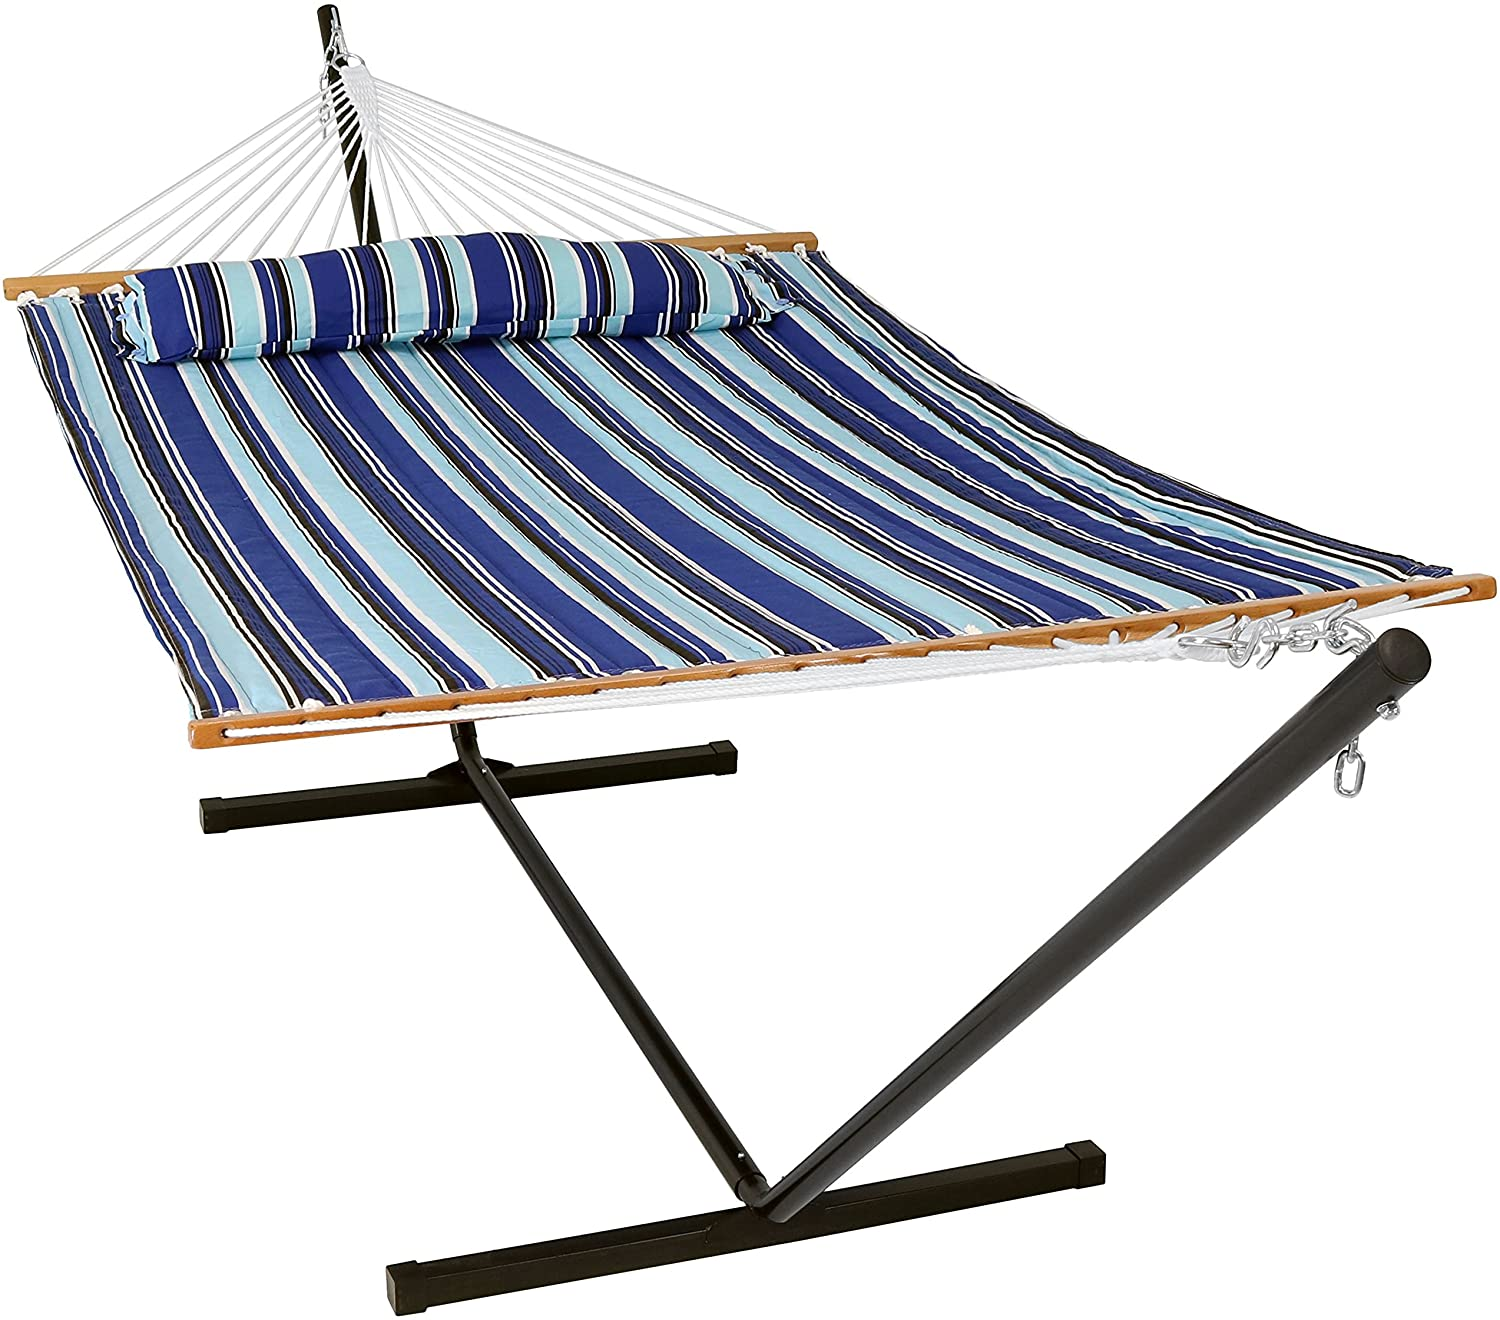 Sunnydaze 12 ft Steel Stand with Catalina Beach Double Spreader Bar Hammock Combo Set